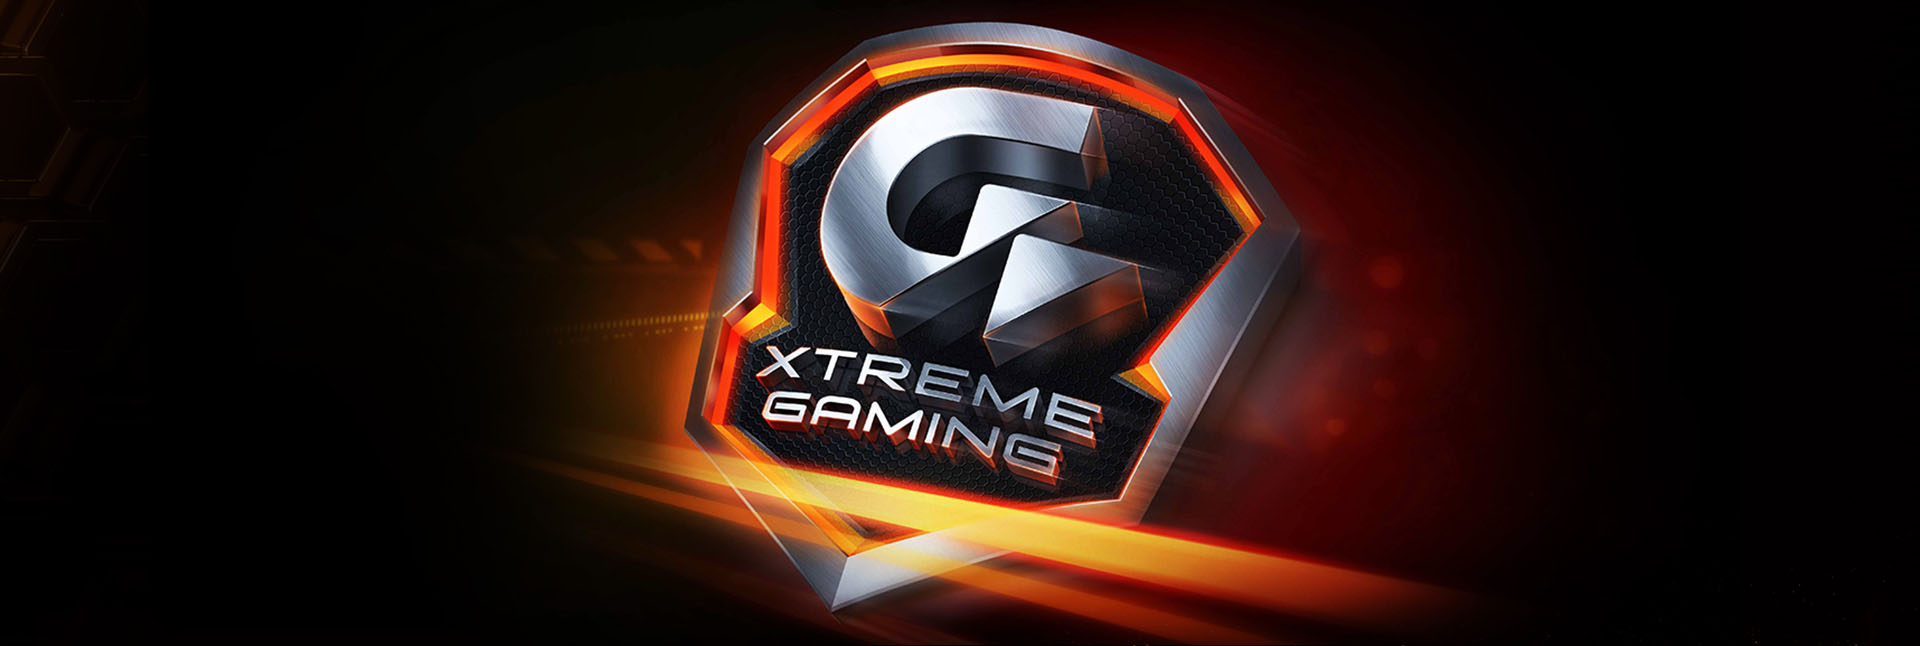 Amazing Gigabyte Pictures & Backgrounds